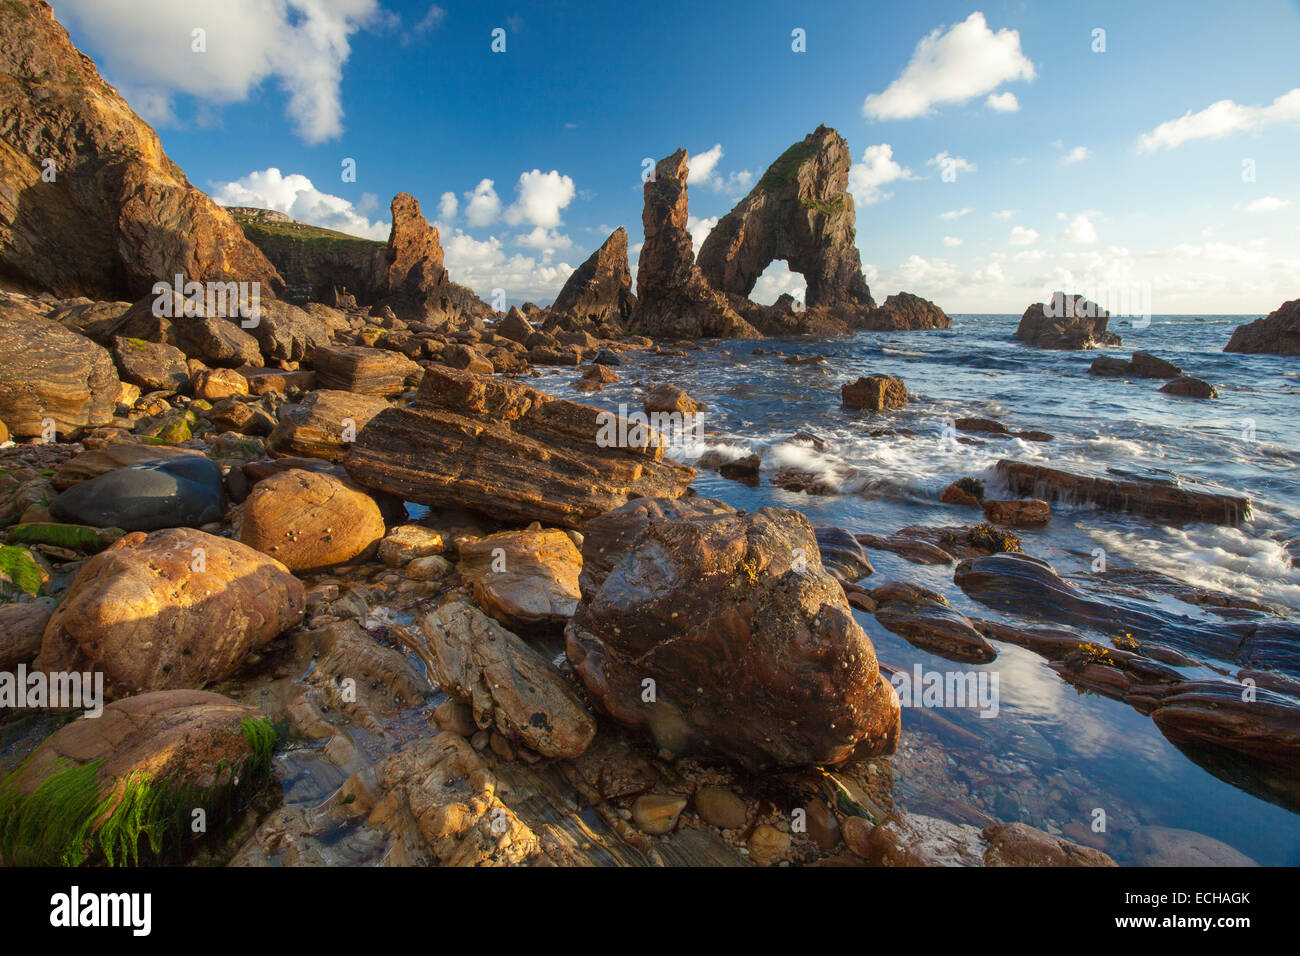 Evening light on the rock formations of Crohy Head, County Donegal, Ireland. Stock Photo